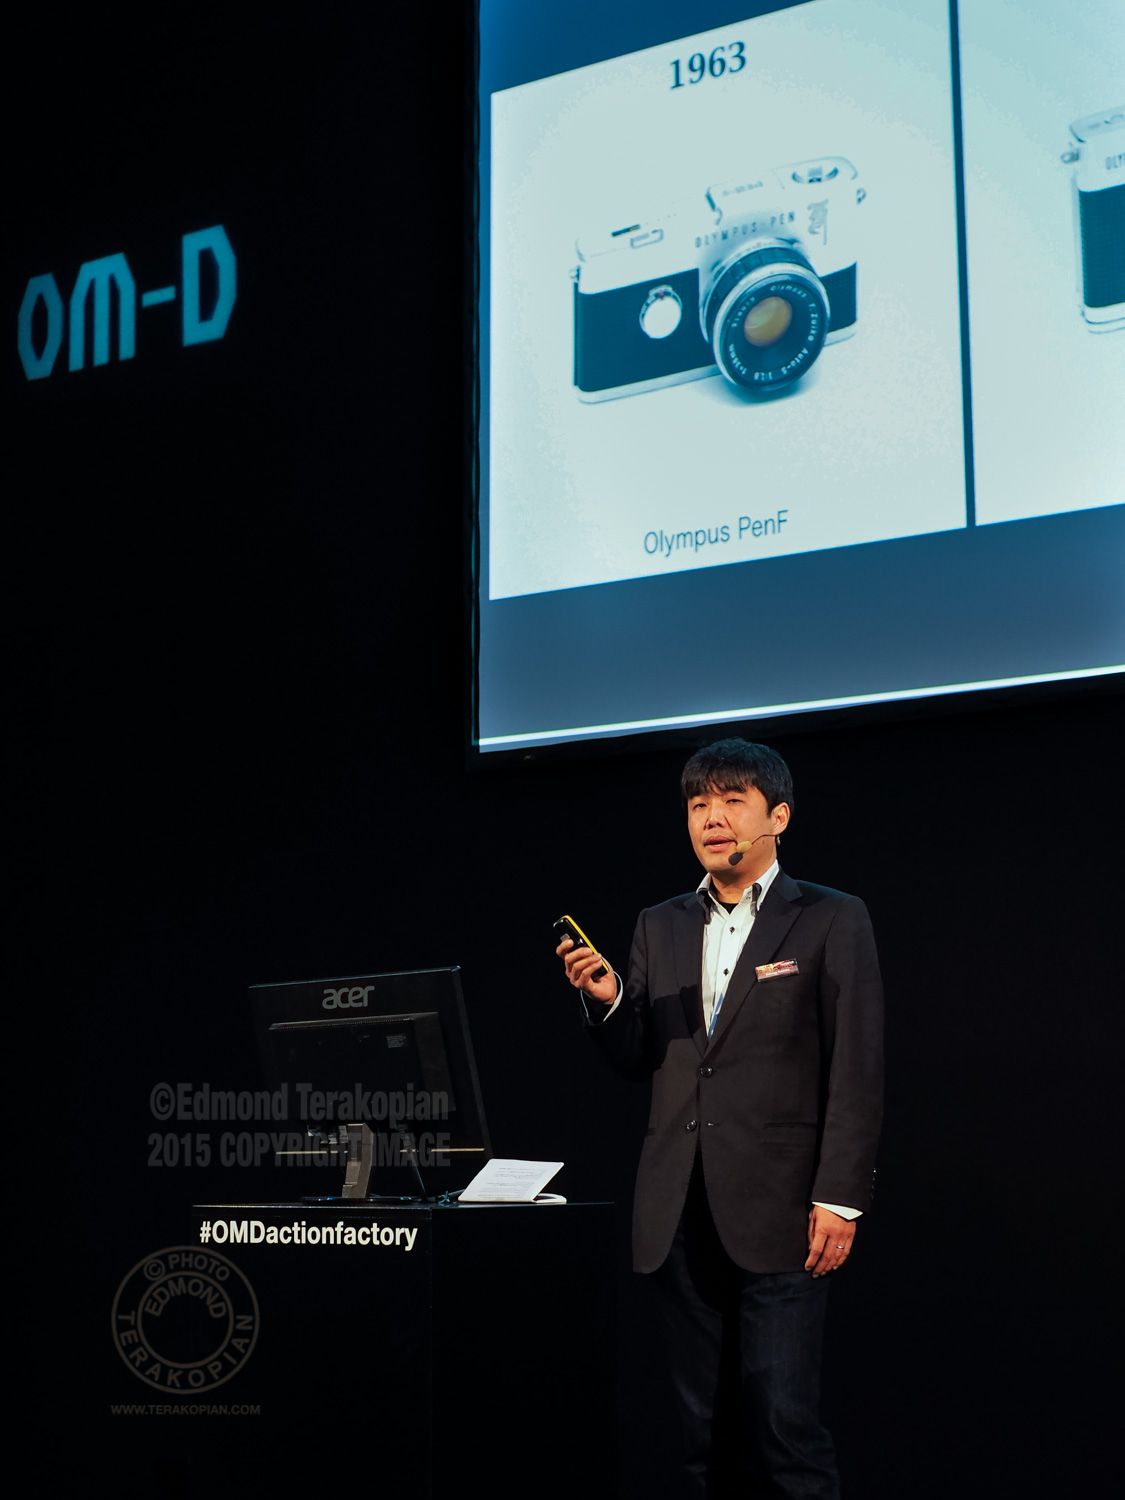 Olympus OM-D Action Factory with the new E-M5 Mark II, Prague, Czech Republic. Setsuya Kataoka (General Manager, Product & Marketing Planning Dept, Olympus Imaging Corp), addresses the photographers and journalists gathered. February 09, 2015. Photo: Edmond Terakopian